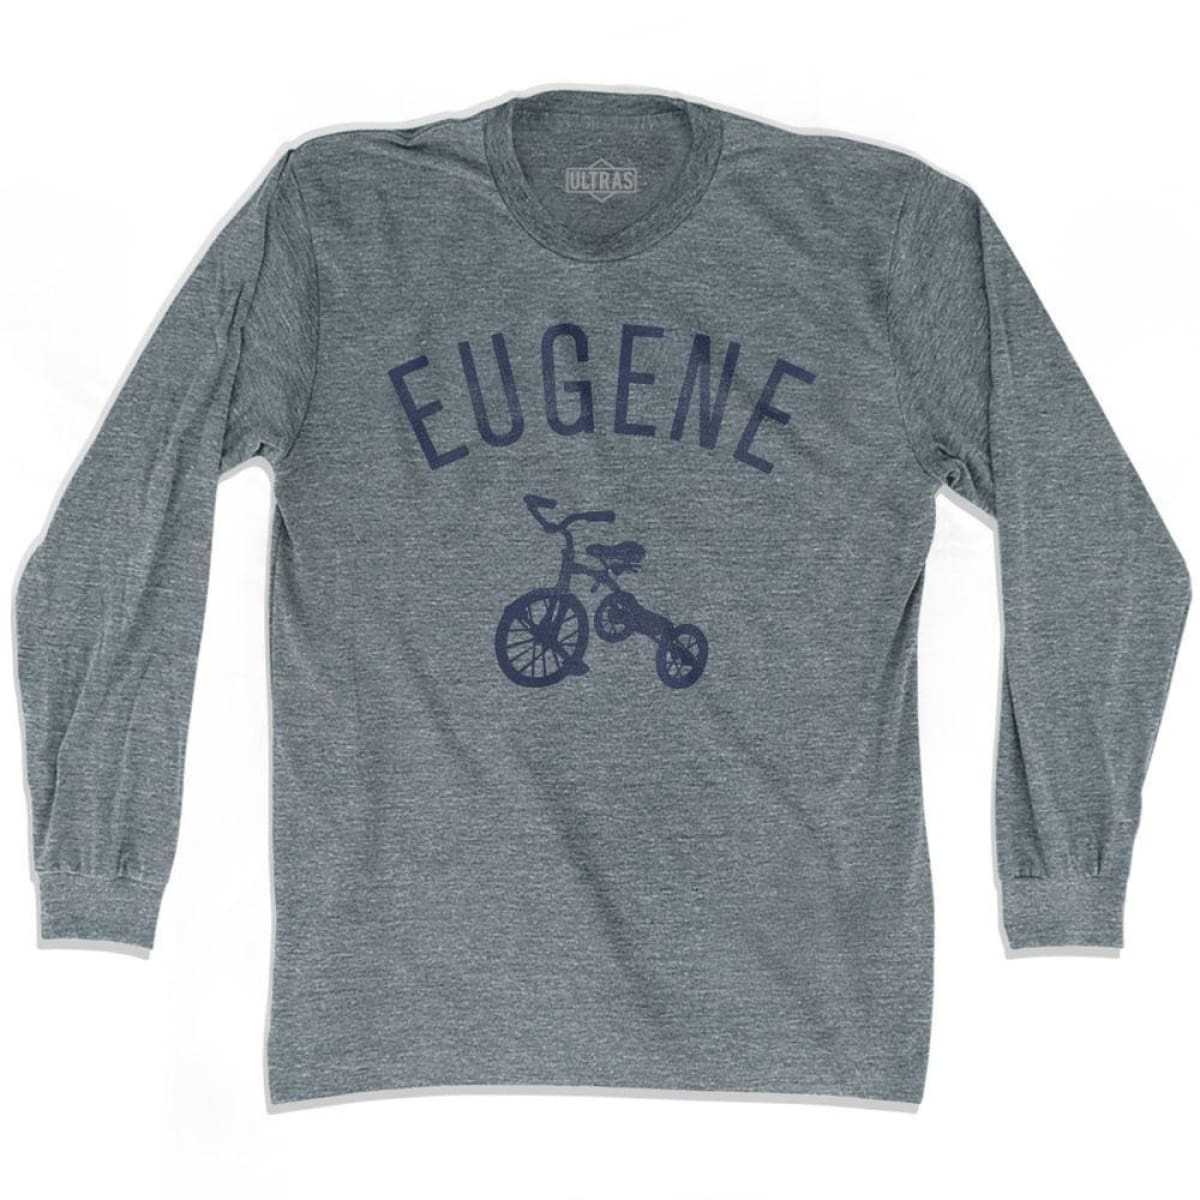 Eugene City Tricycle Adult Tri-Blend Long Sleeve T-shirt - Tricycle City